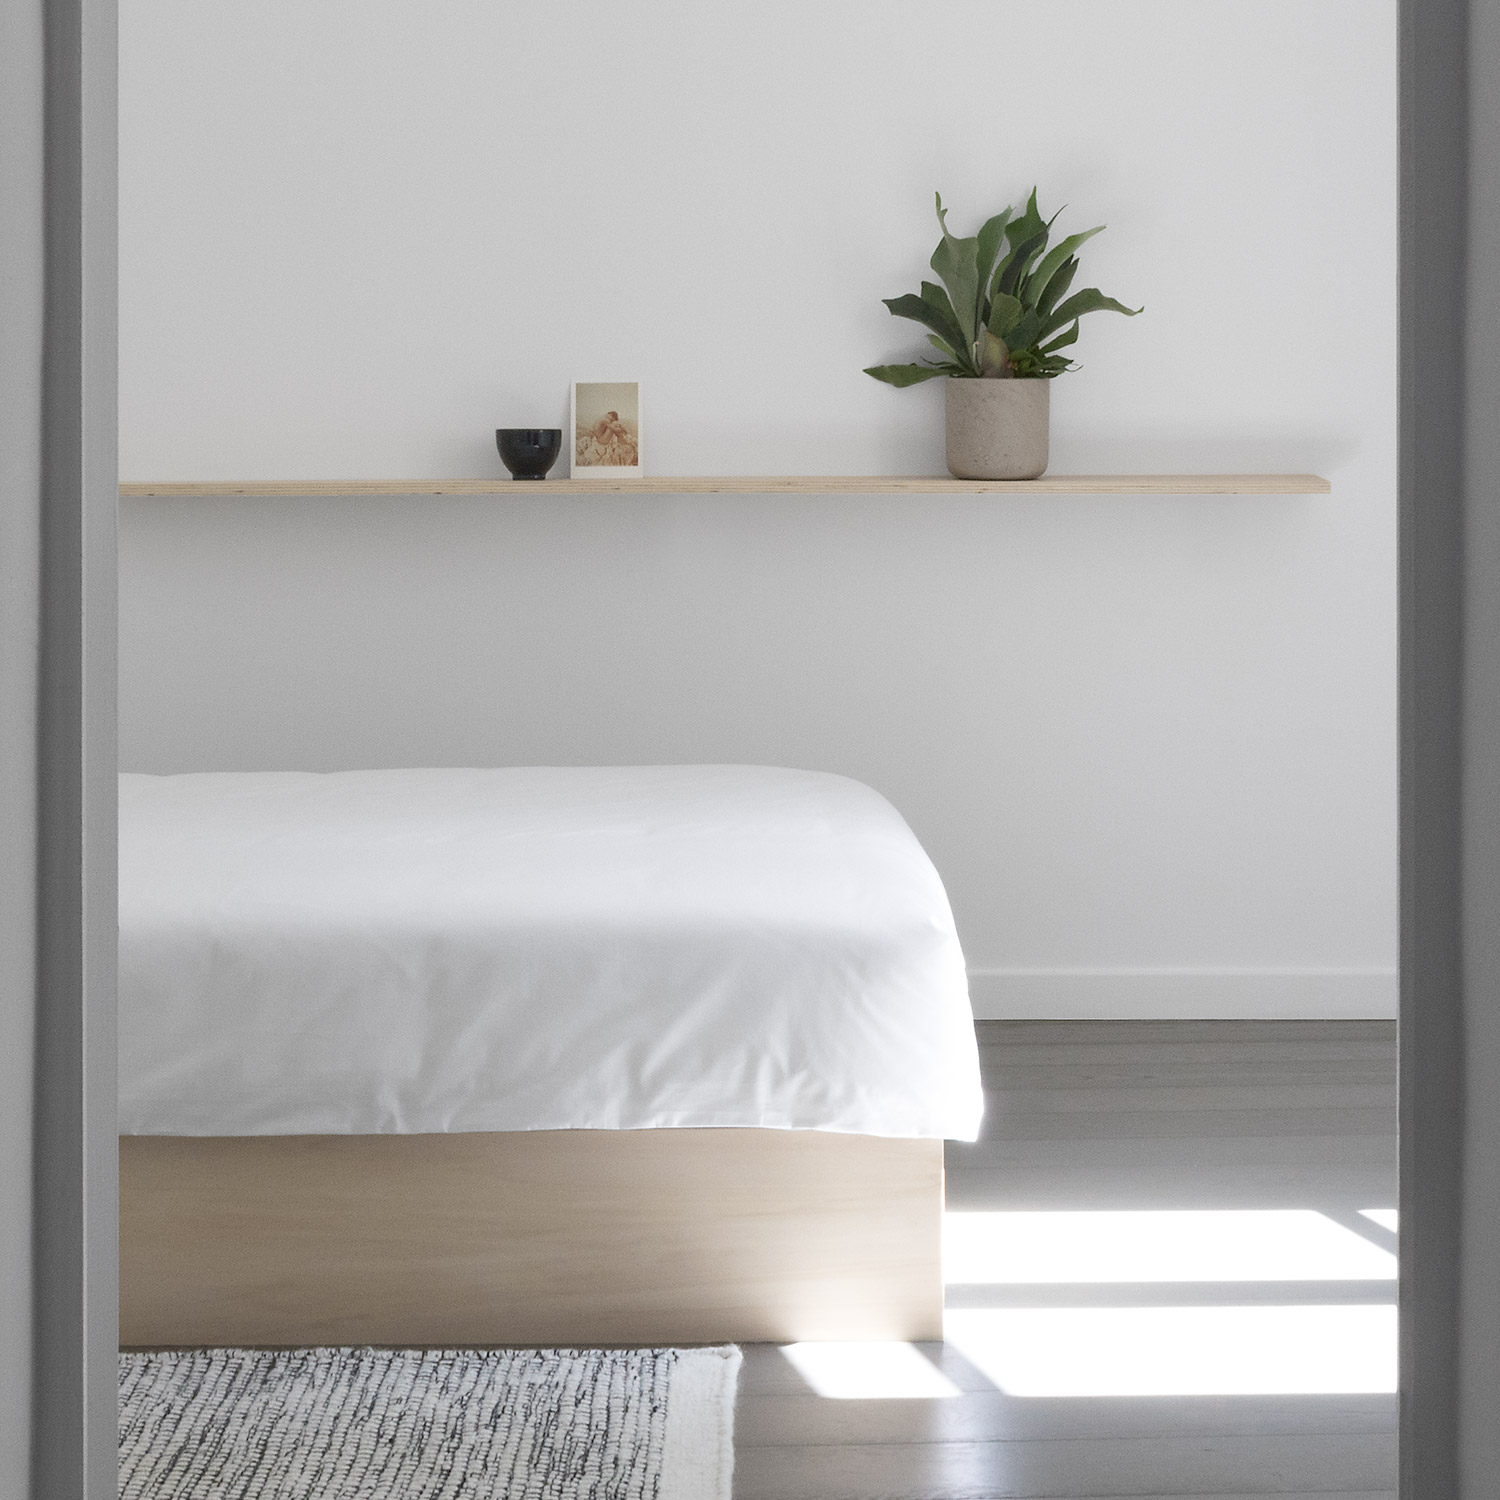 Modern minimal Japanese white bedroom with plywood bed and side table